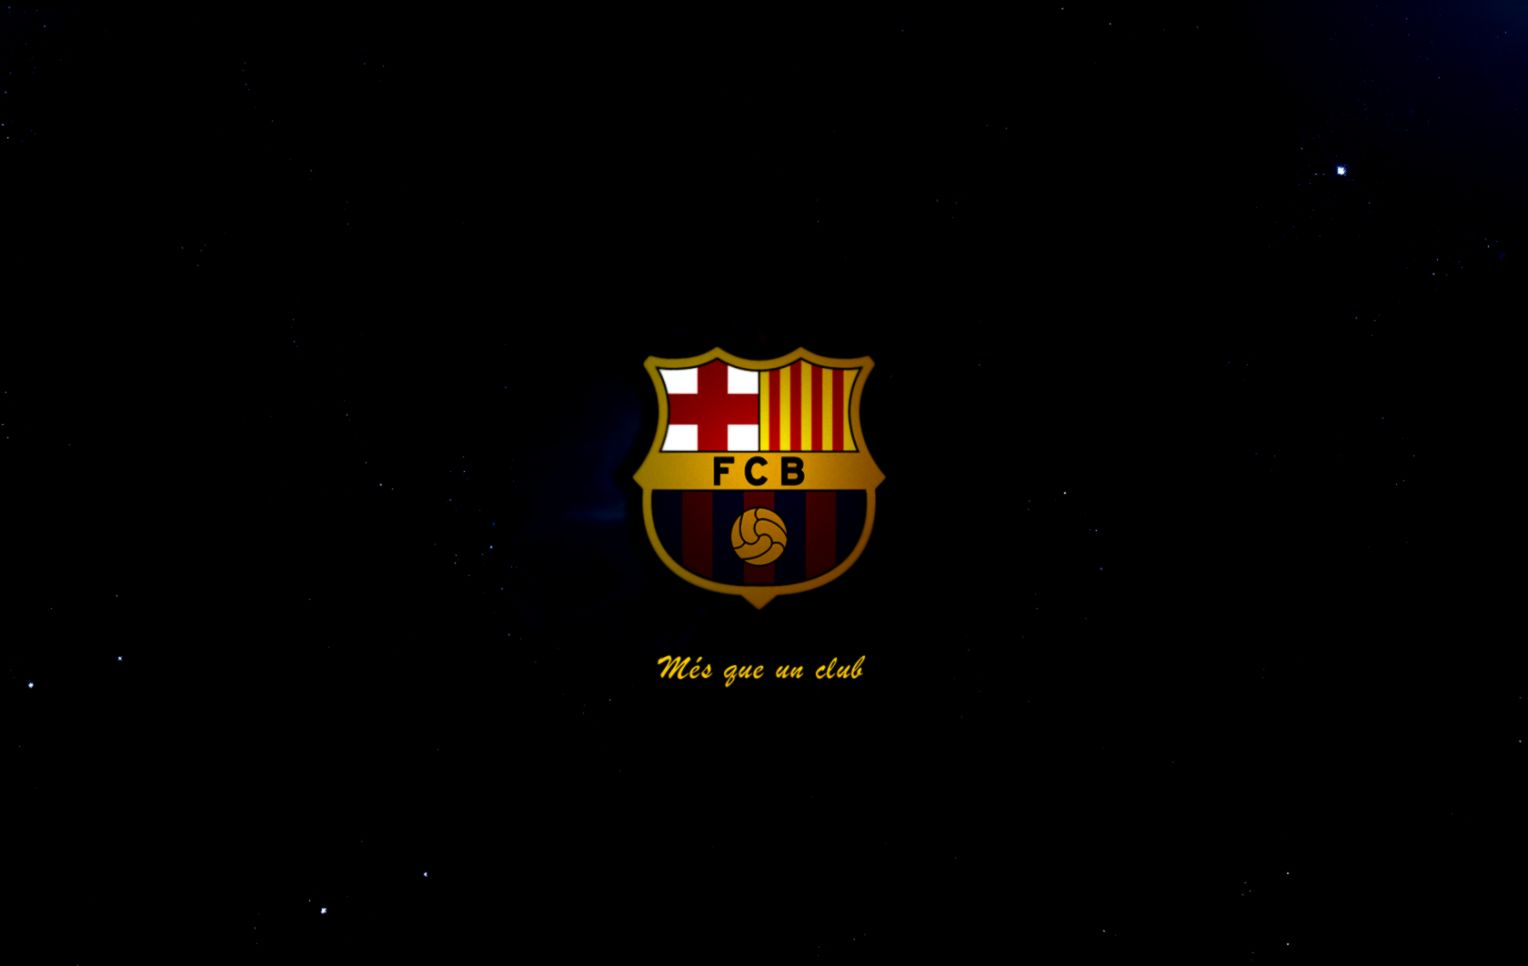 Fc Barcelona Wallpapers Best Wallpaper Hd